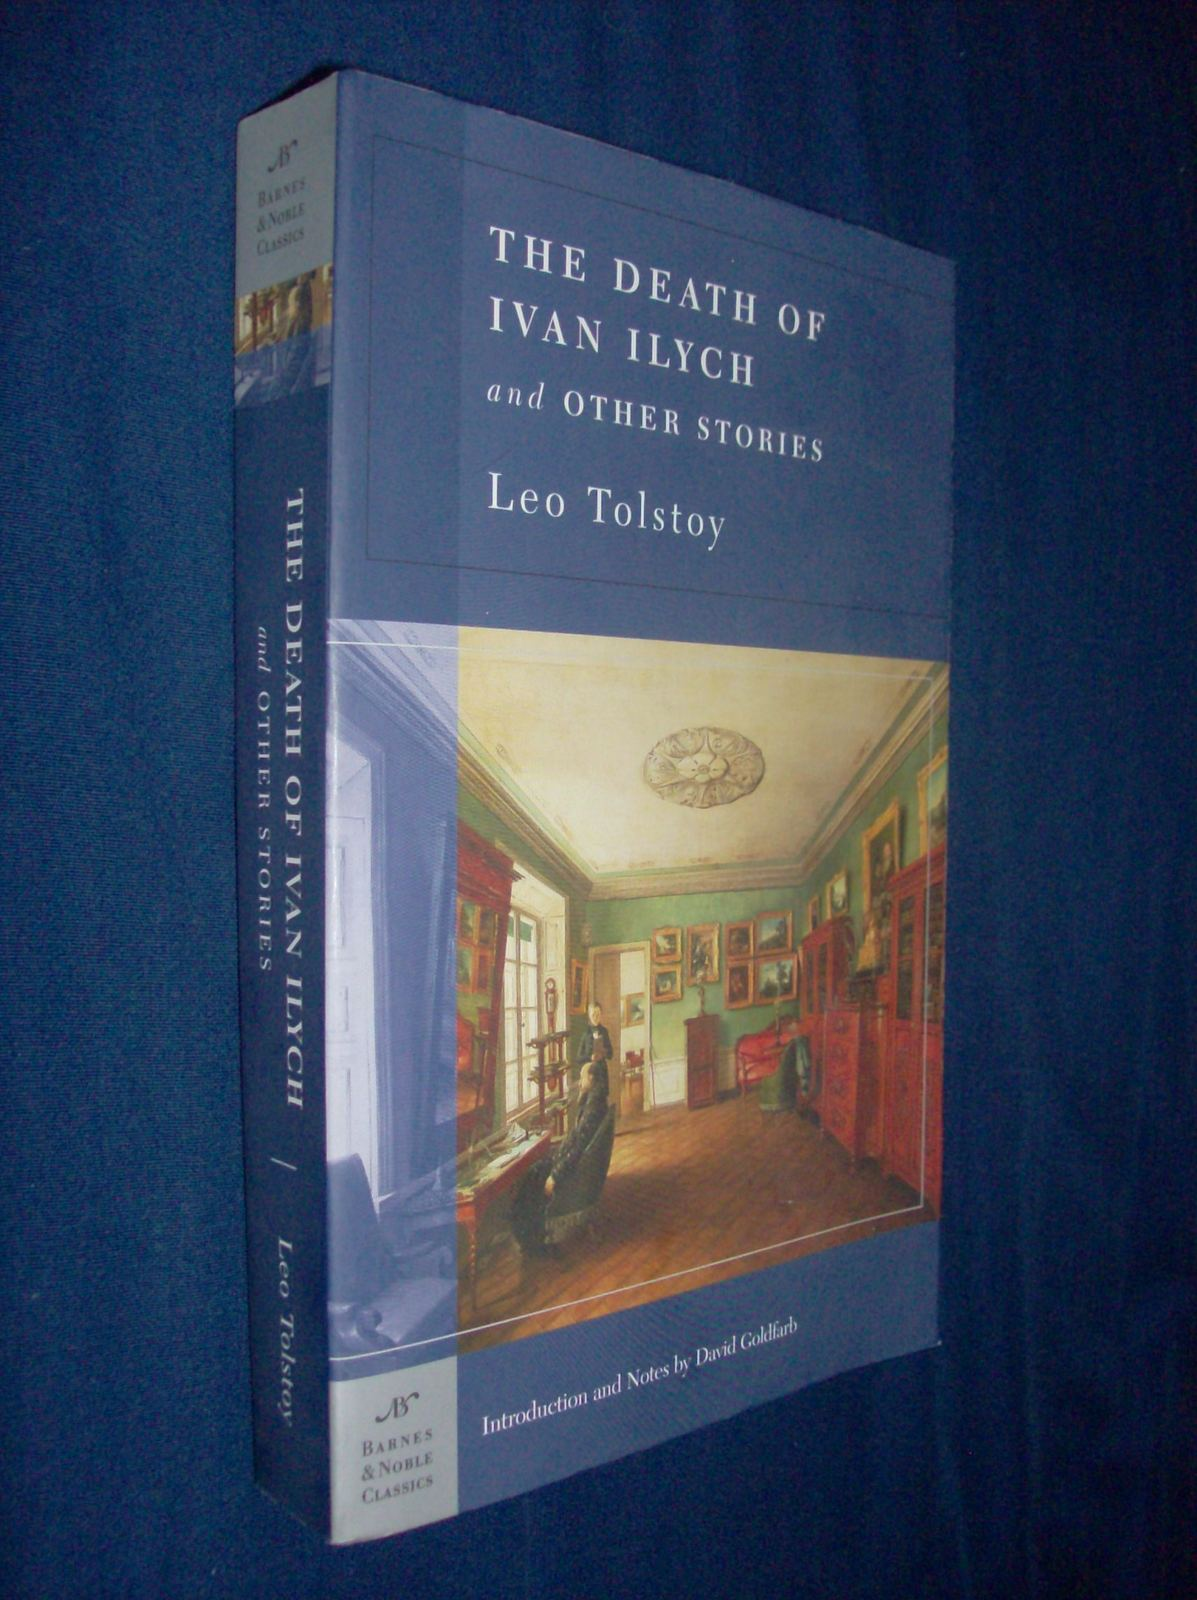 a review of leo tolstoys novel death of ivan ilyich All about the death of ivan ilych by leo tolstoy this book should not be read the day you find out that your grandfather has passed and published reviews.